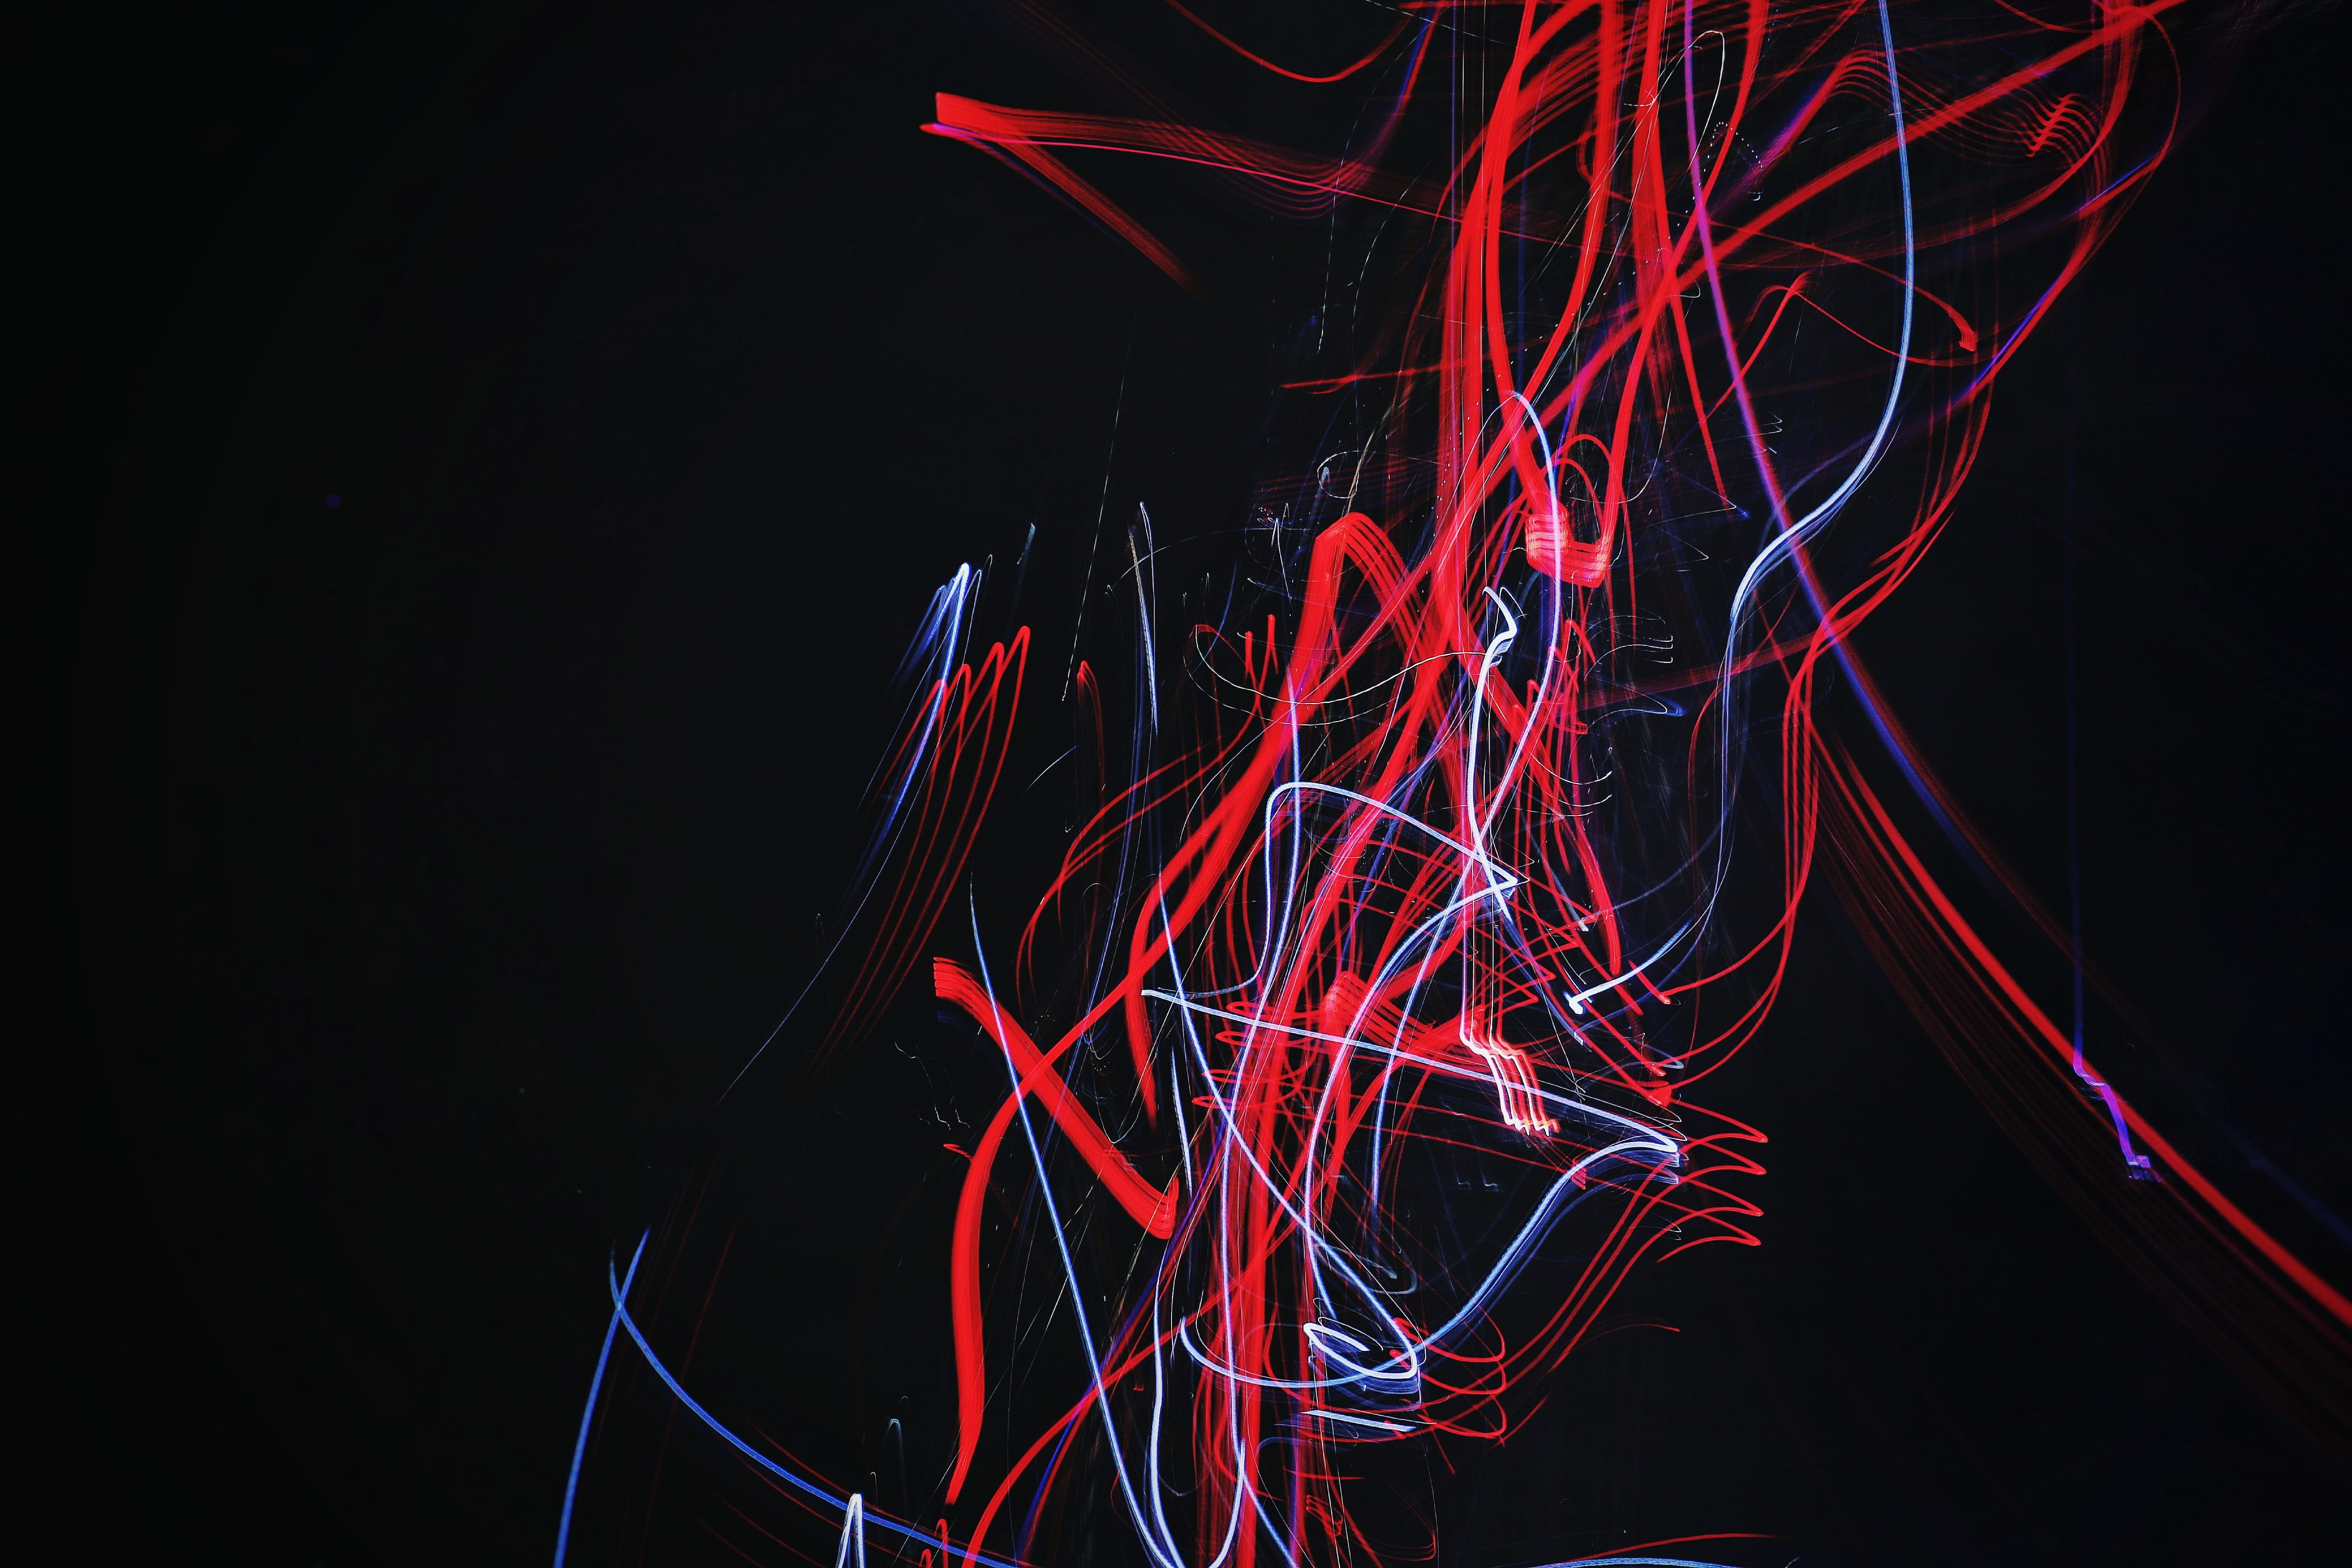 Red And Blue Doodle Artwork With Black Background Red And White Light Strokes Light Black Neon Light Trail Red Pattern Neon Wallpaper Neon Light Trails